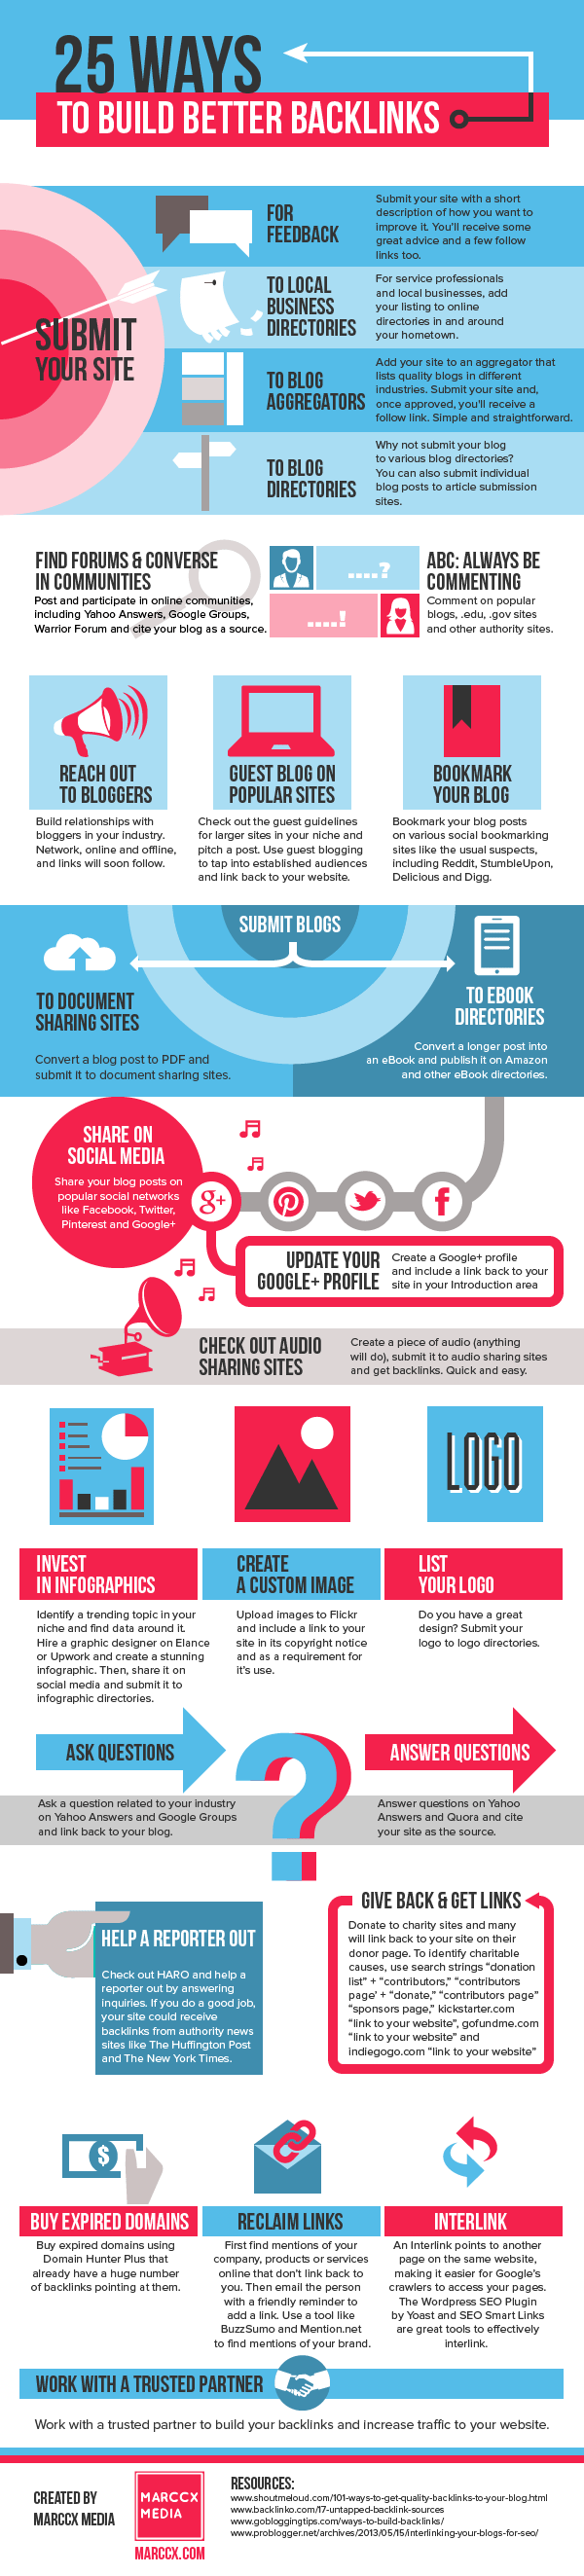 25 Ways to Build Backlinks: An Infographic